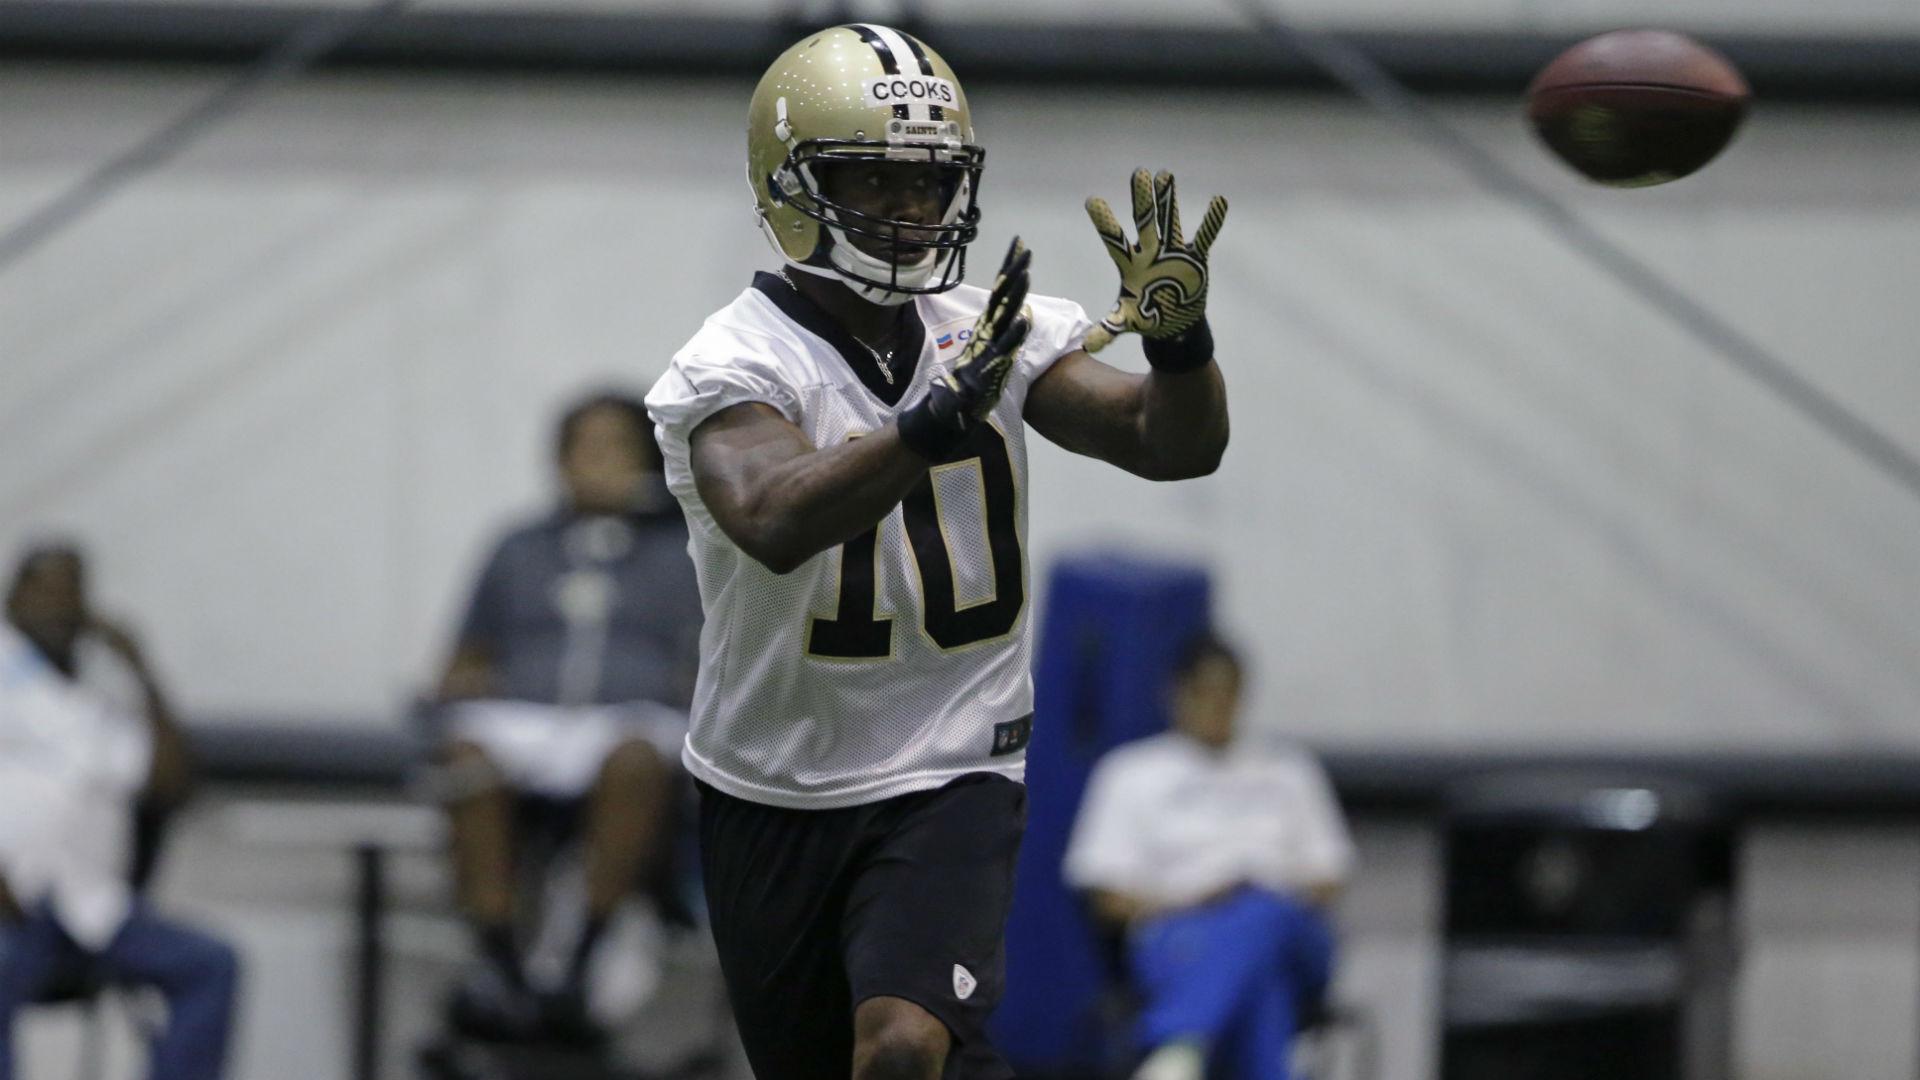 Saints fantasy football sleeper: Already a Hall-of-Famer ... of sorts